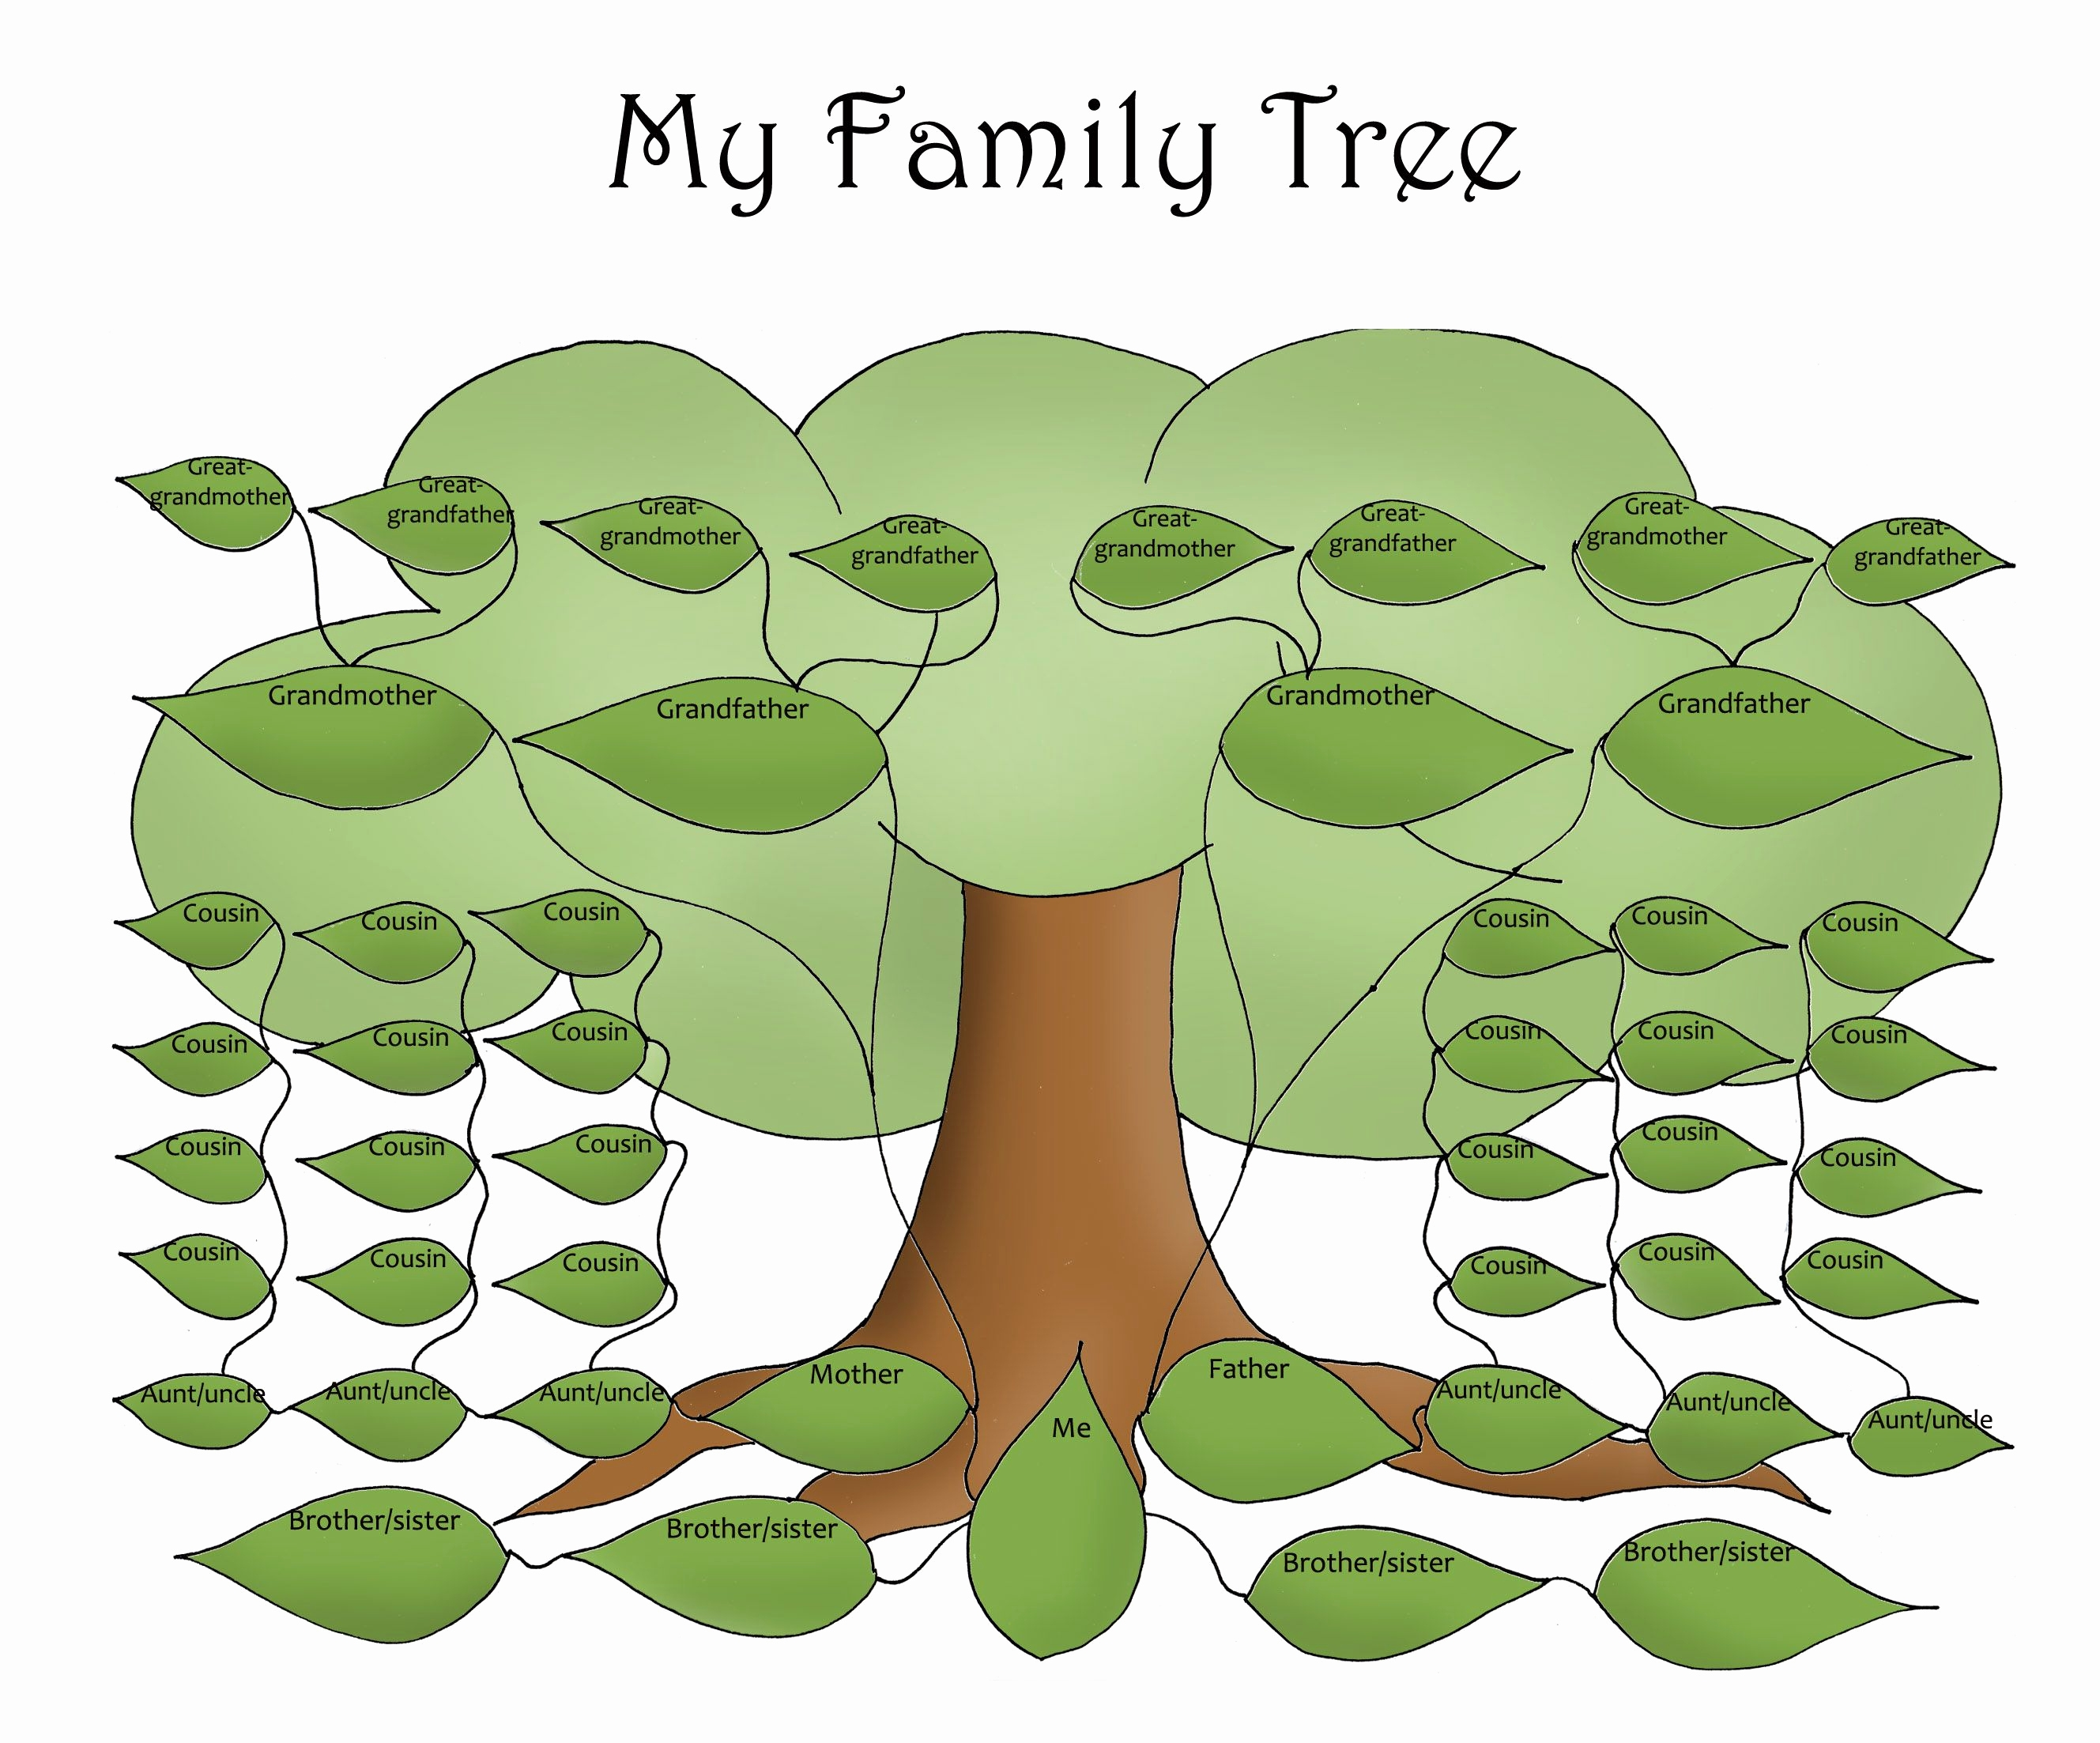 Free Editable Family Tree Template - Daily Roabox | Daily ...